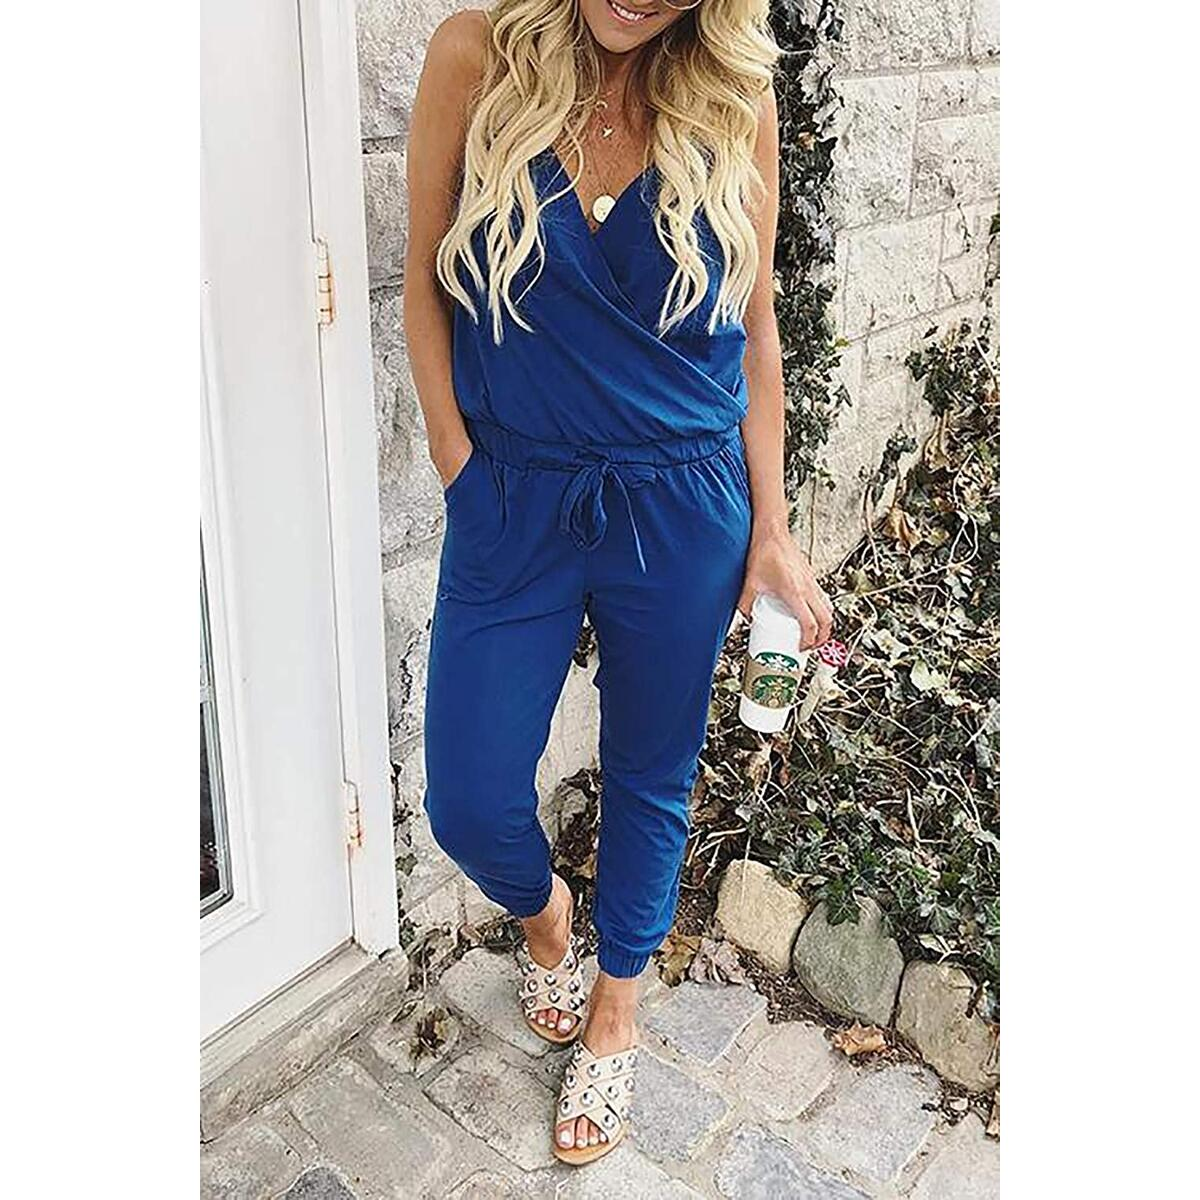 Alelly Women's Sexy V Neck Backless Spaghetti Strap Jumpsuit Rompers